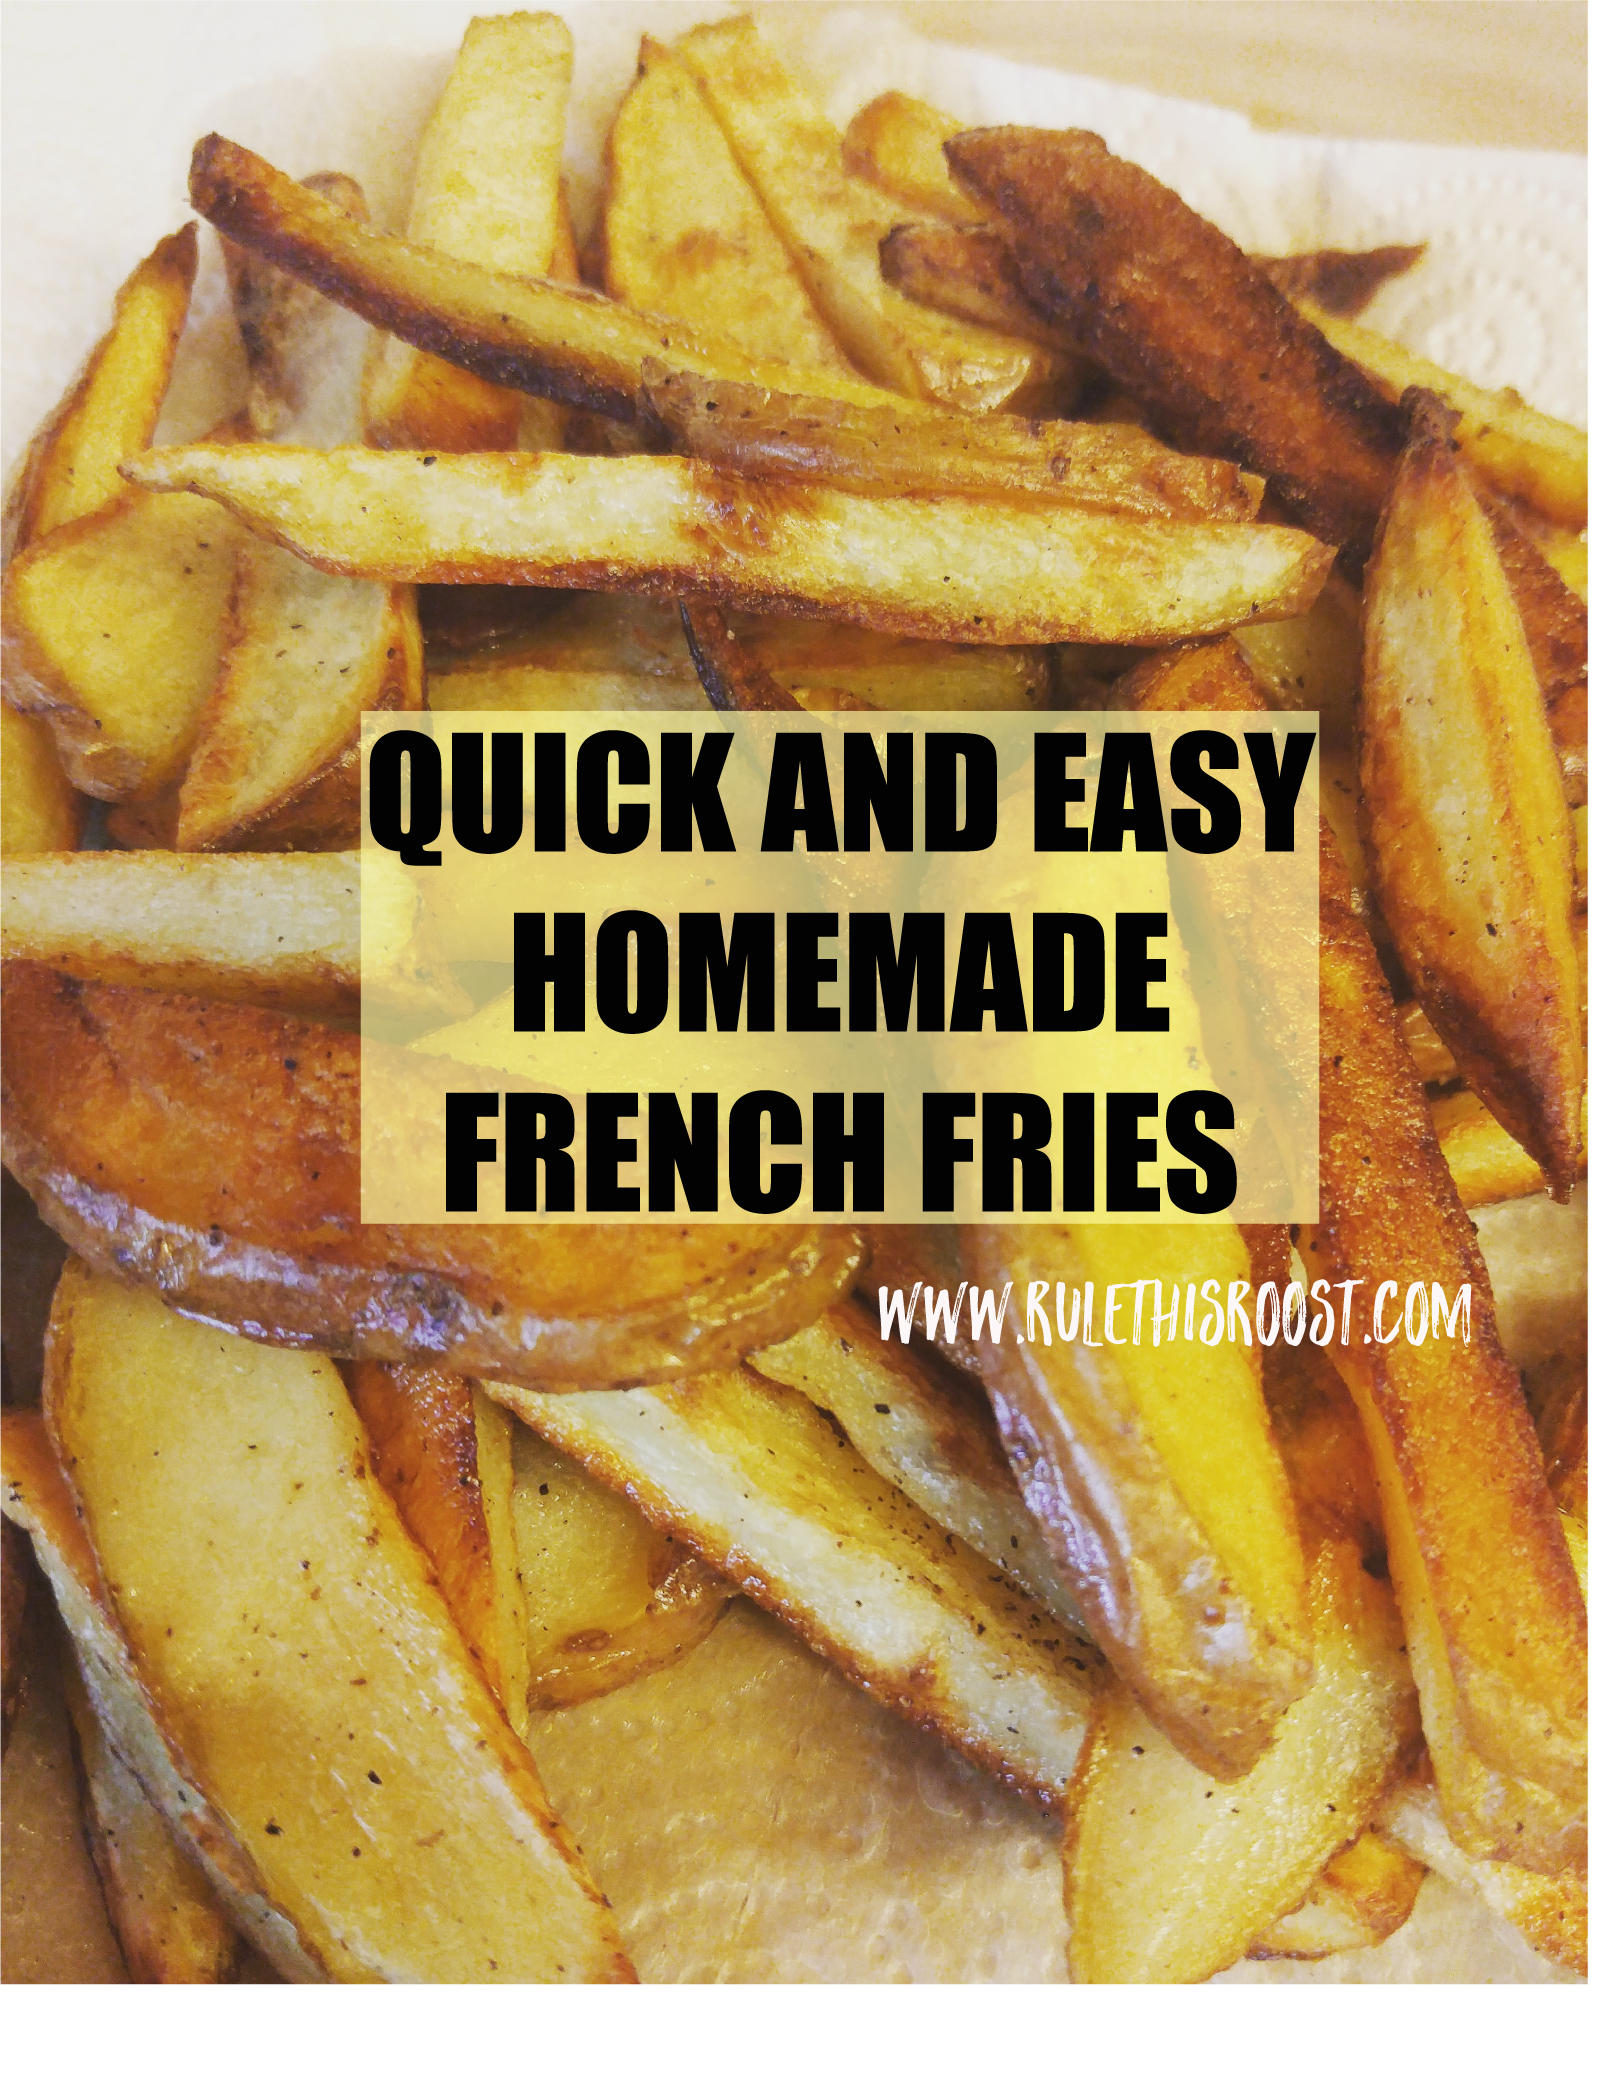 Quick and Easy Homemade French Fries